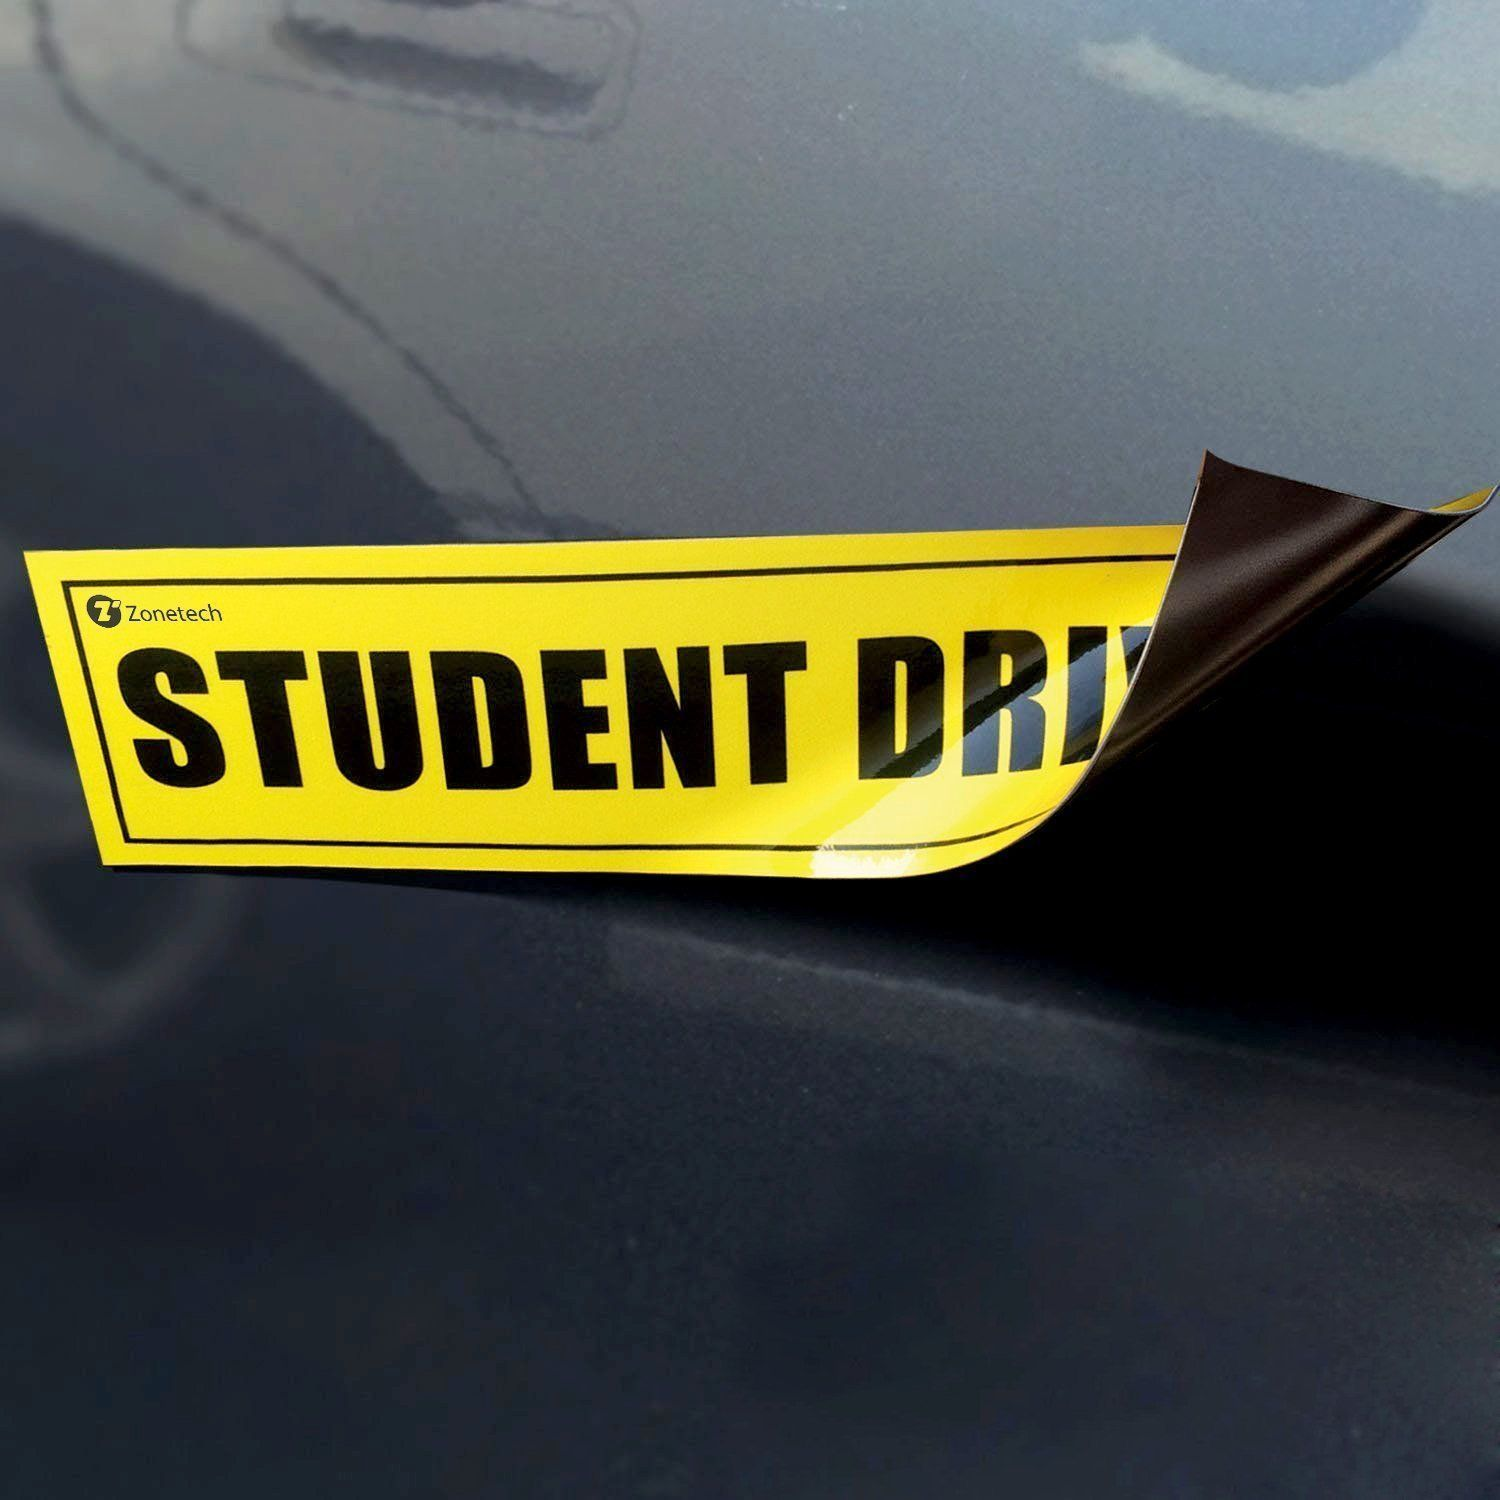 Zone tech student driver yellow magnet reflective magnetic vehicle car sign magnet